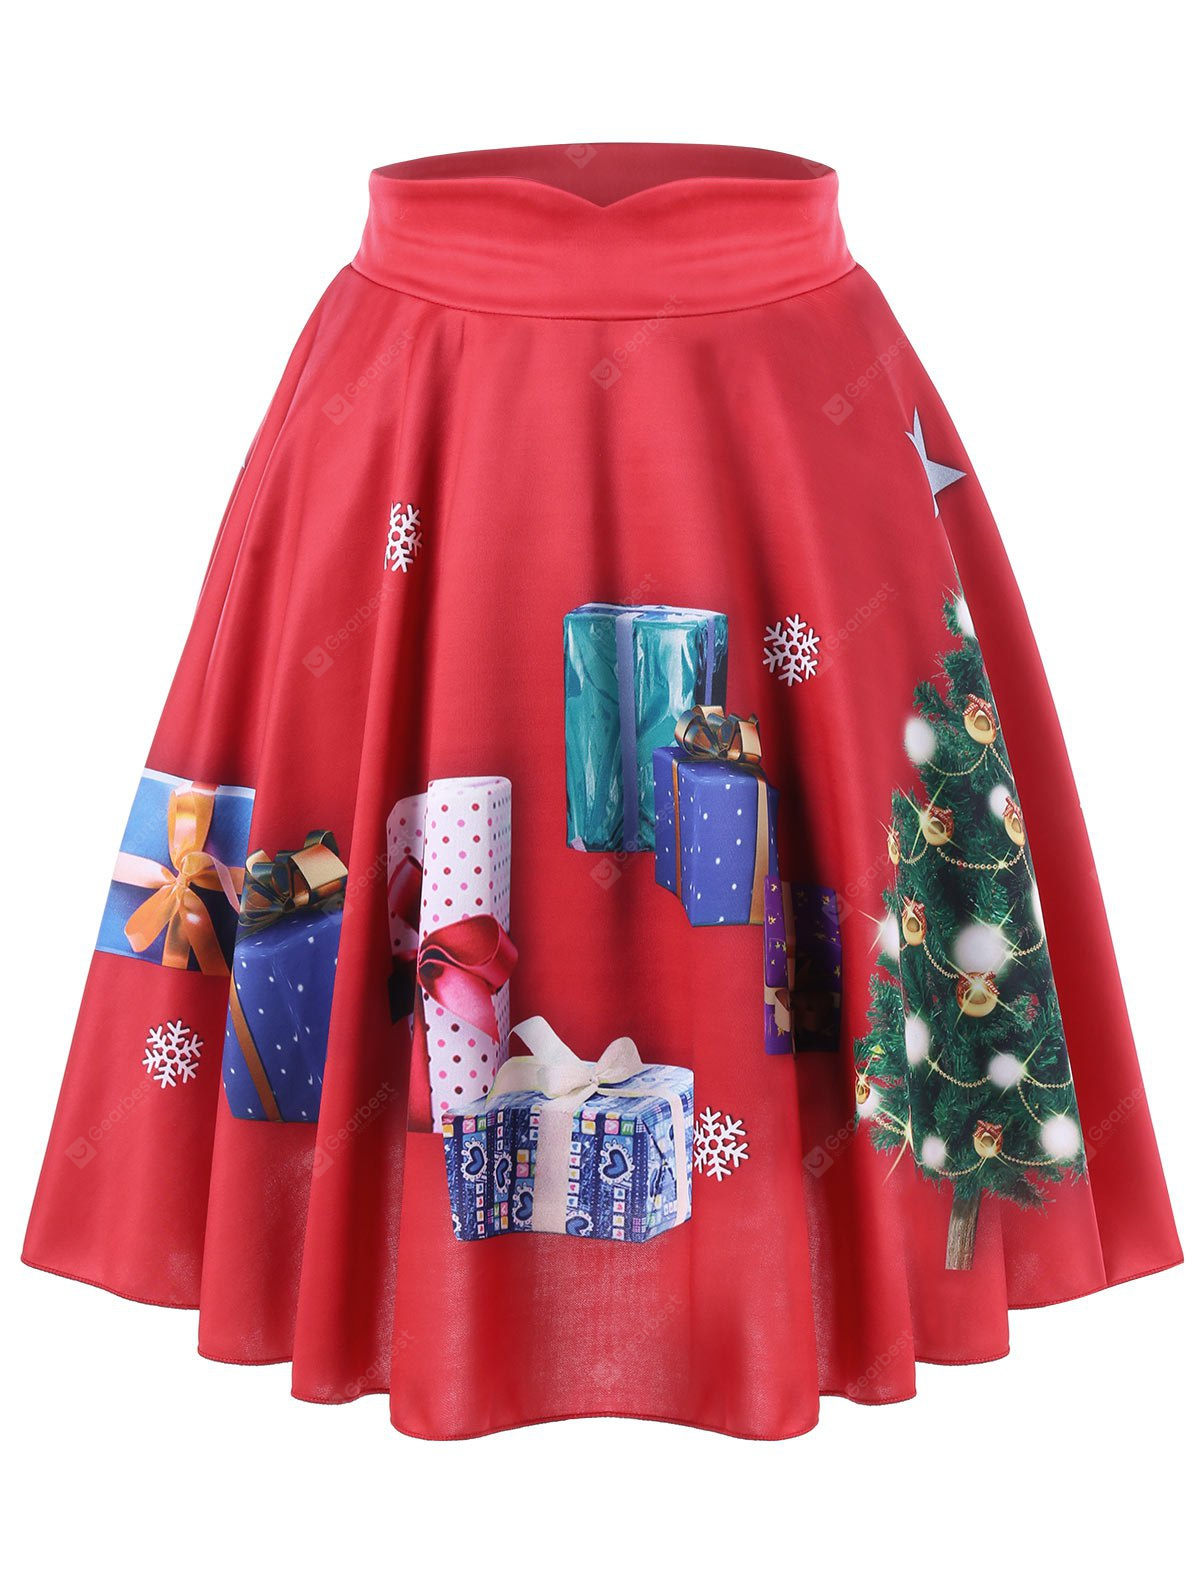 RED 3XL Christmas Plus Size Tree and Gift Print Midi Skirt